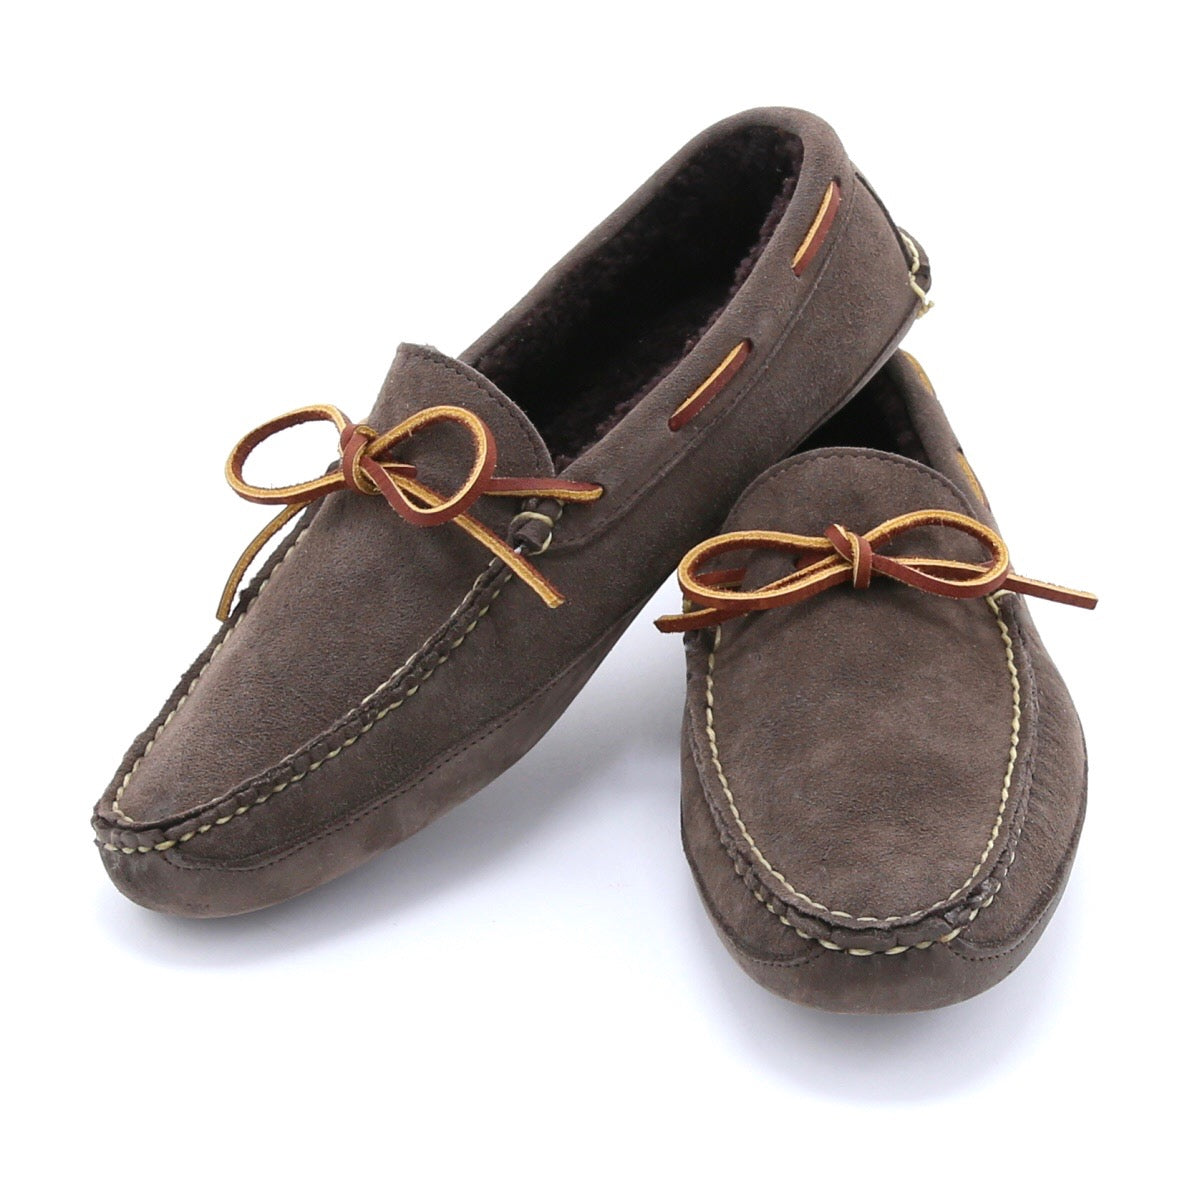 Freeman Slipper - Flint Kudu Suede